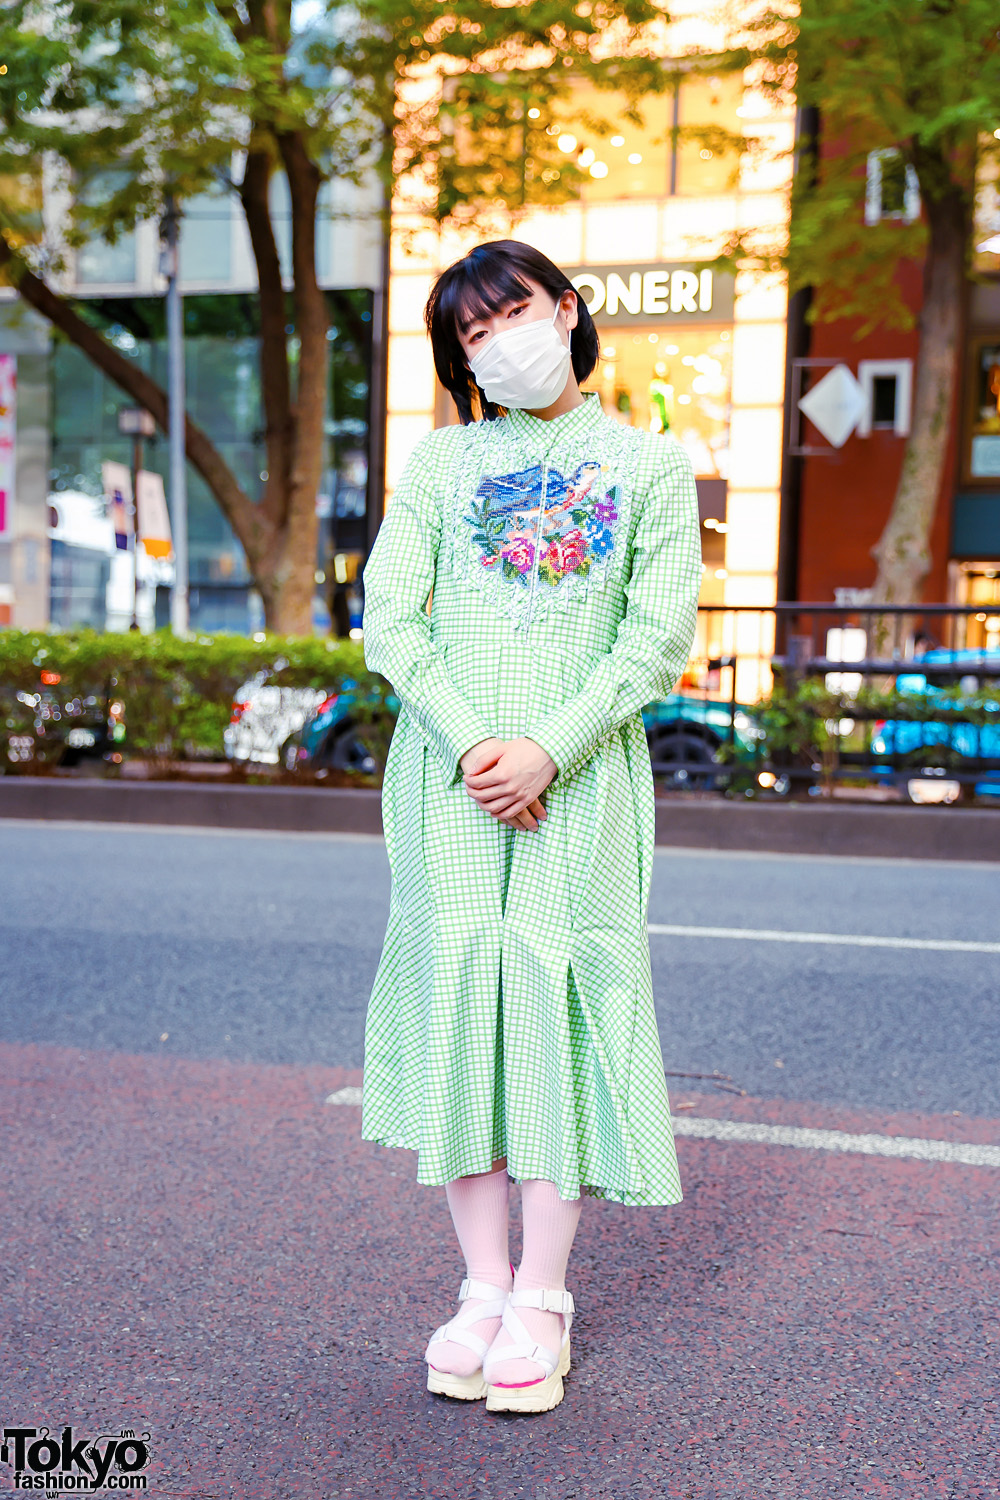 Harajuku Style w/ Fringed Bob, Face Mask, Roma Uvarov Design Checkered Dress & Yosuke Strappy Sandals